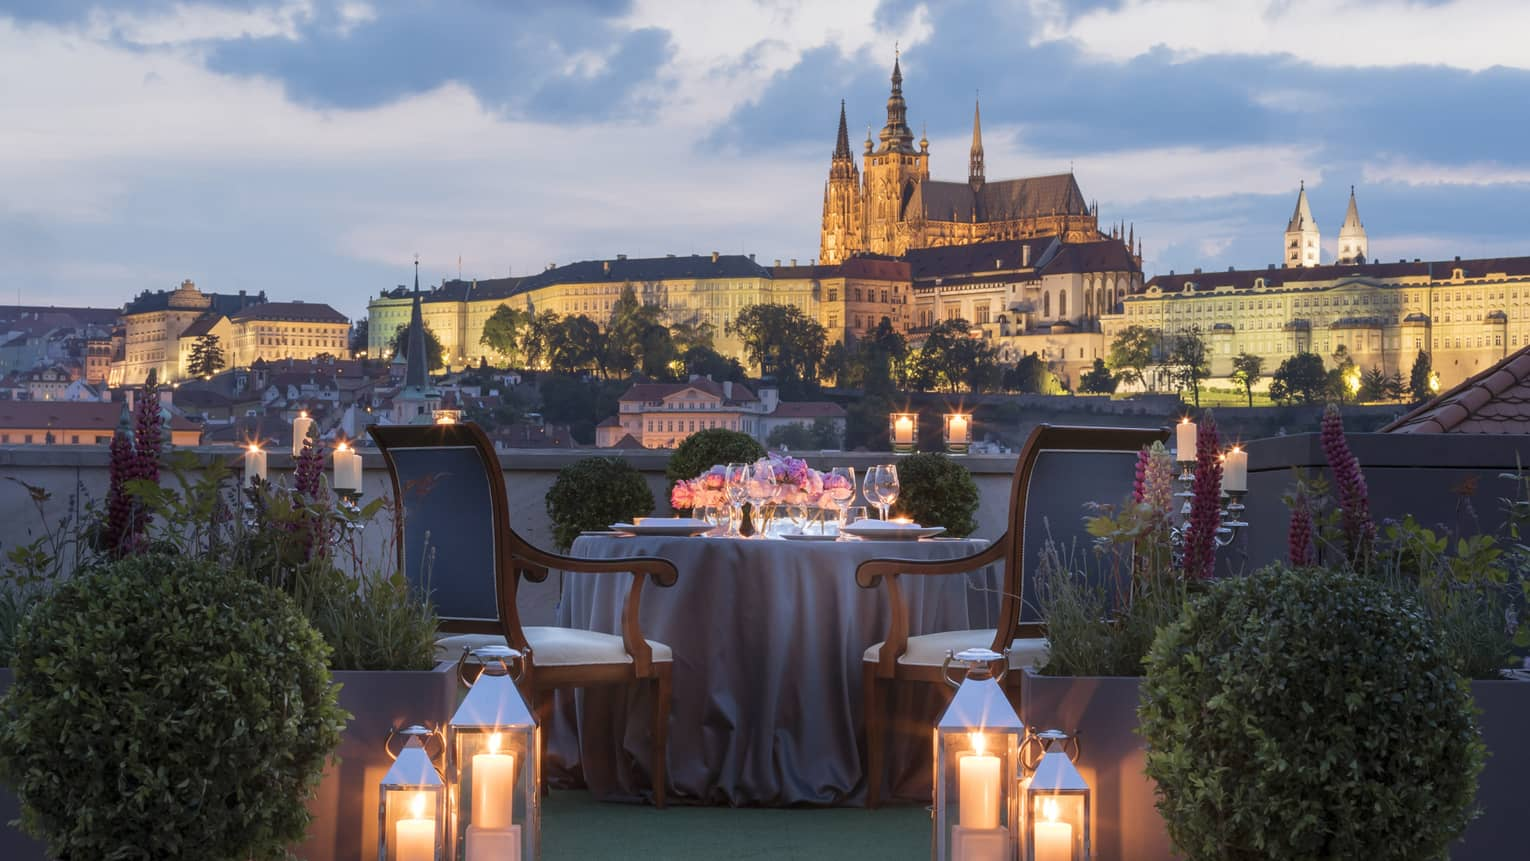 Romantic rooftop dinner with glowing candles and lanterns, overlooking Prague at dusk